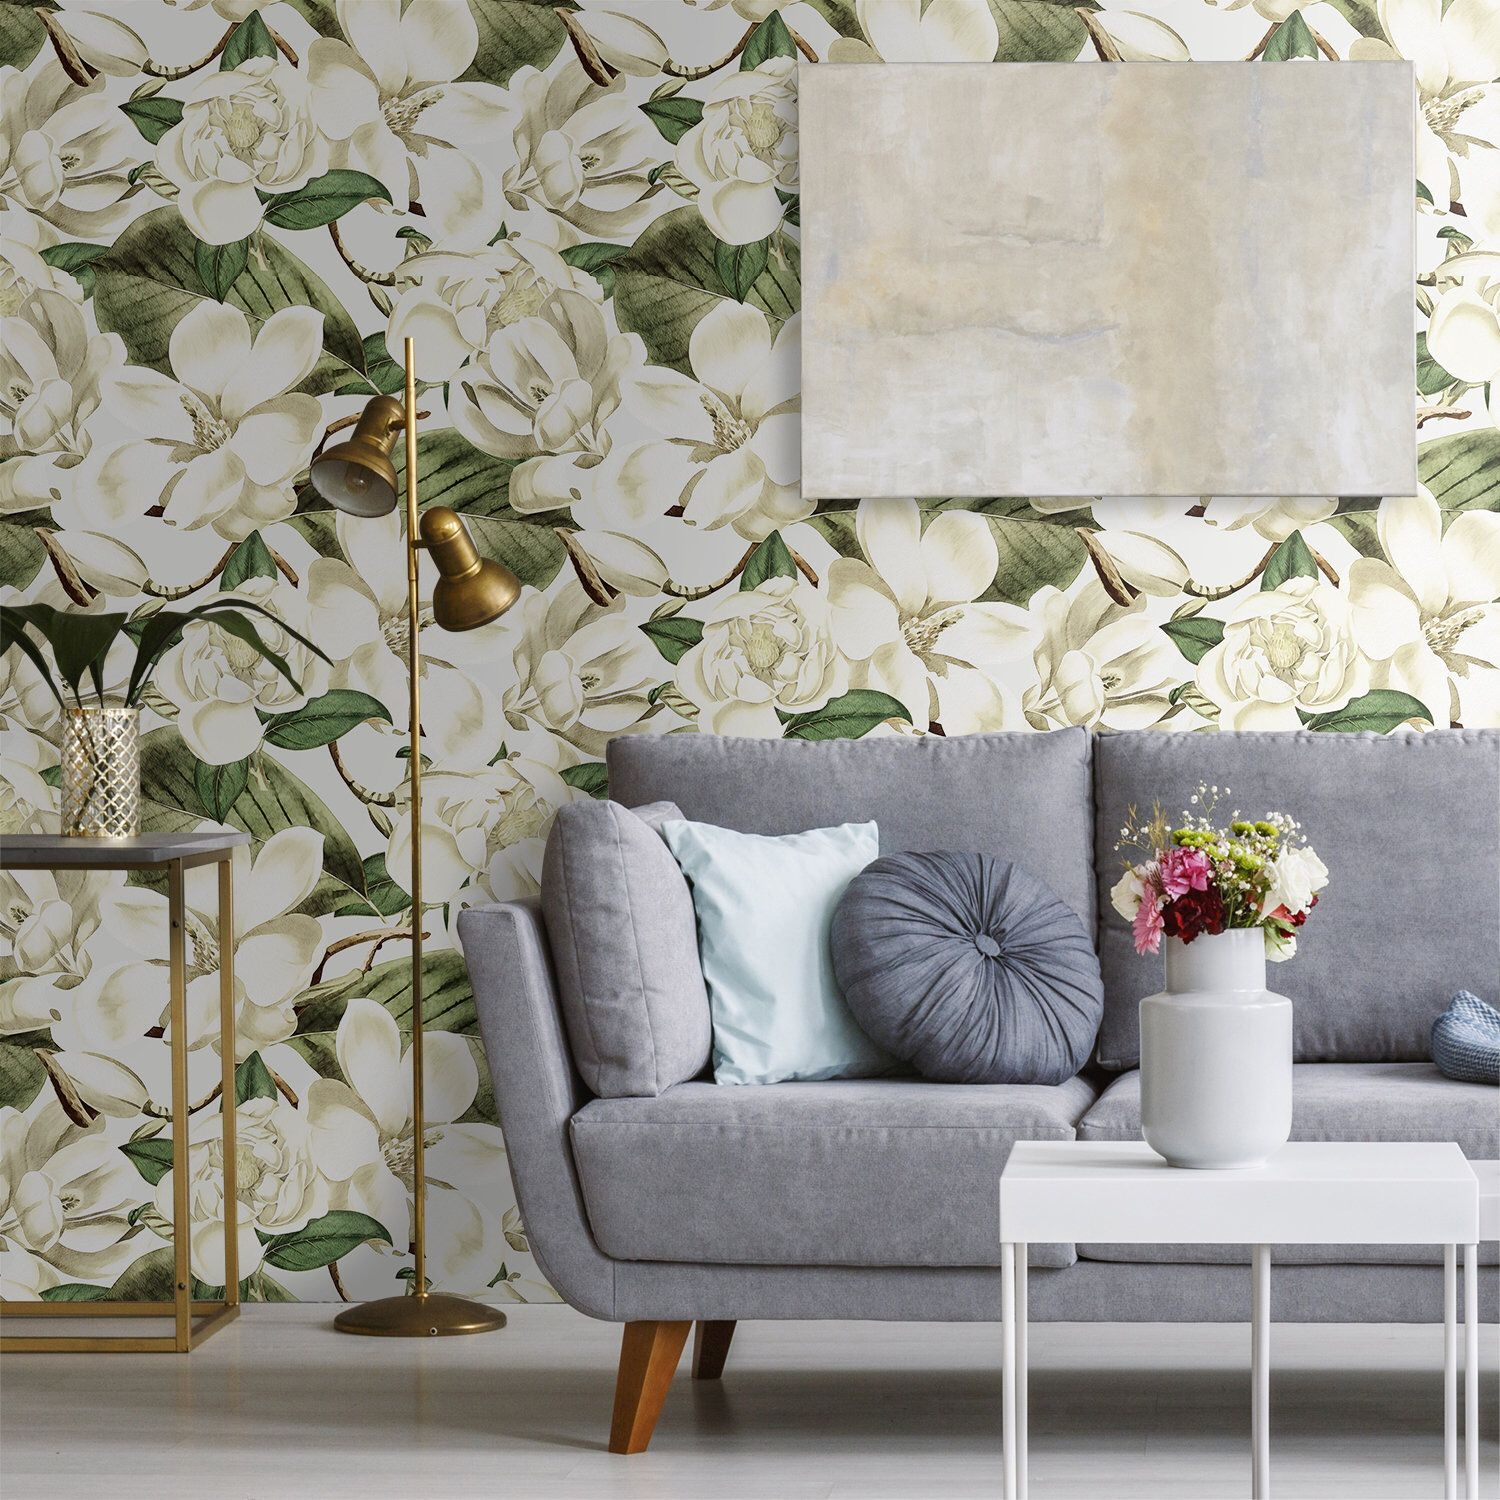 Watercolor Large Floral Removable Wallpaper, Peel and